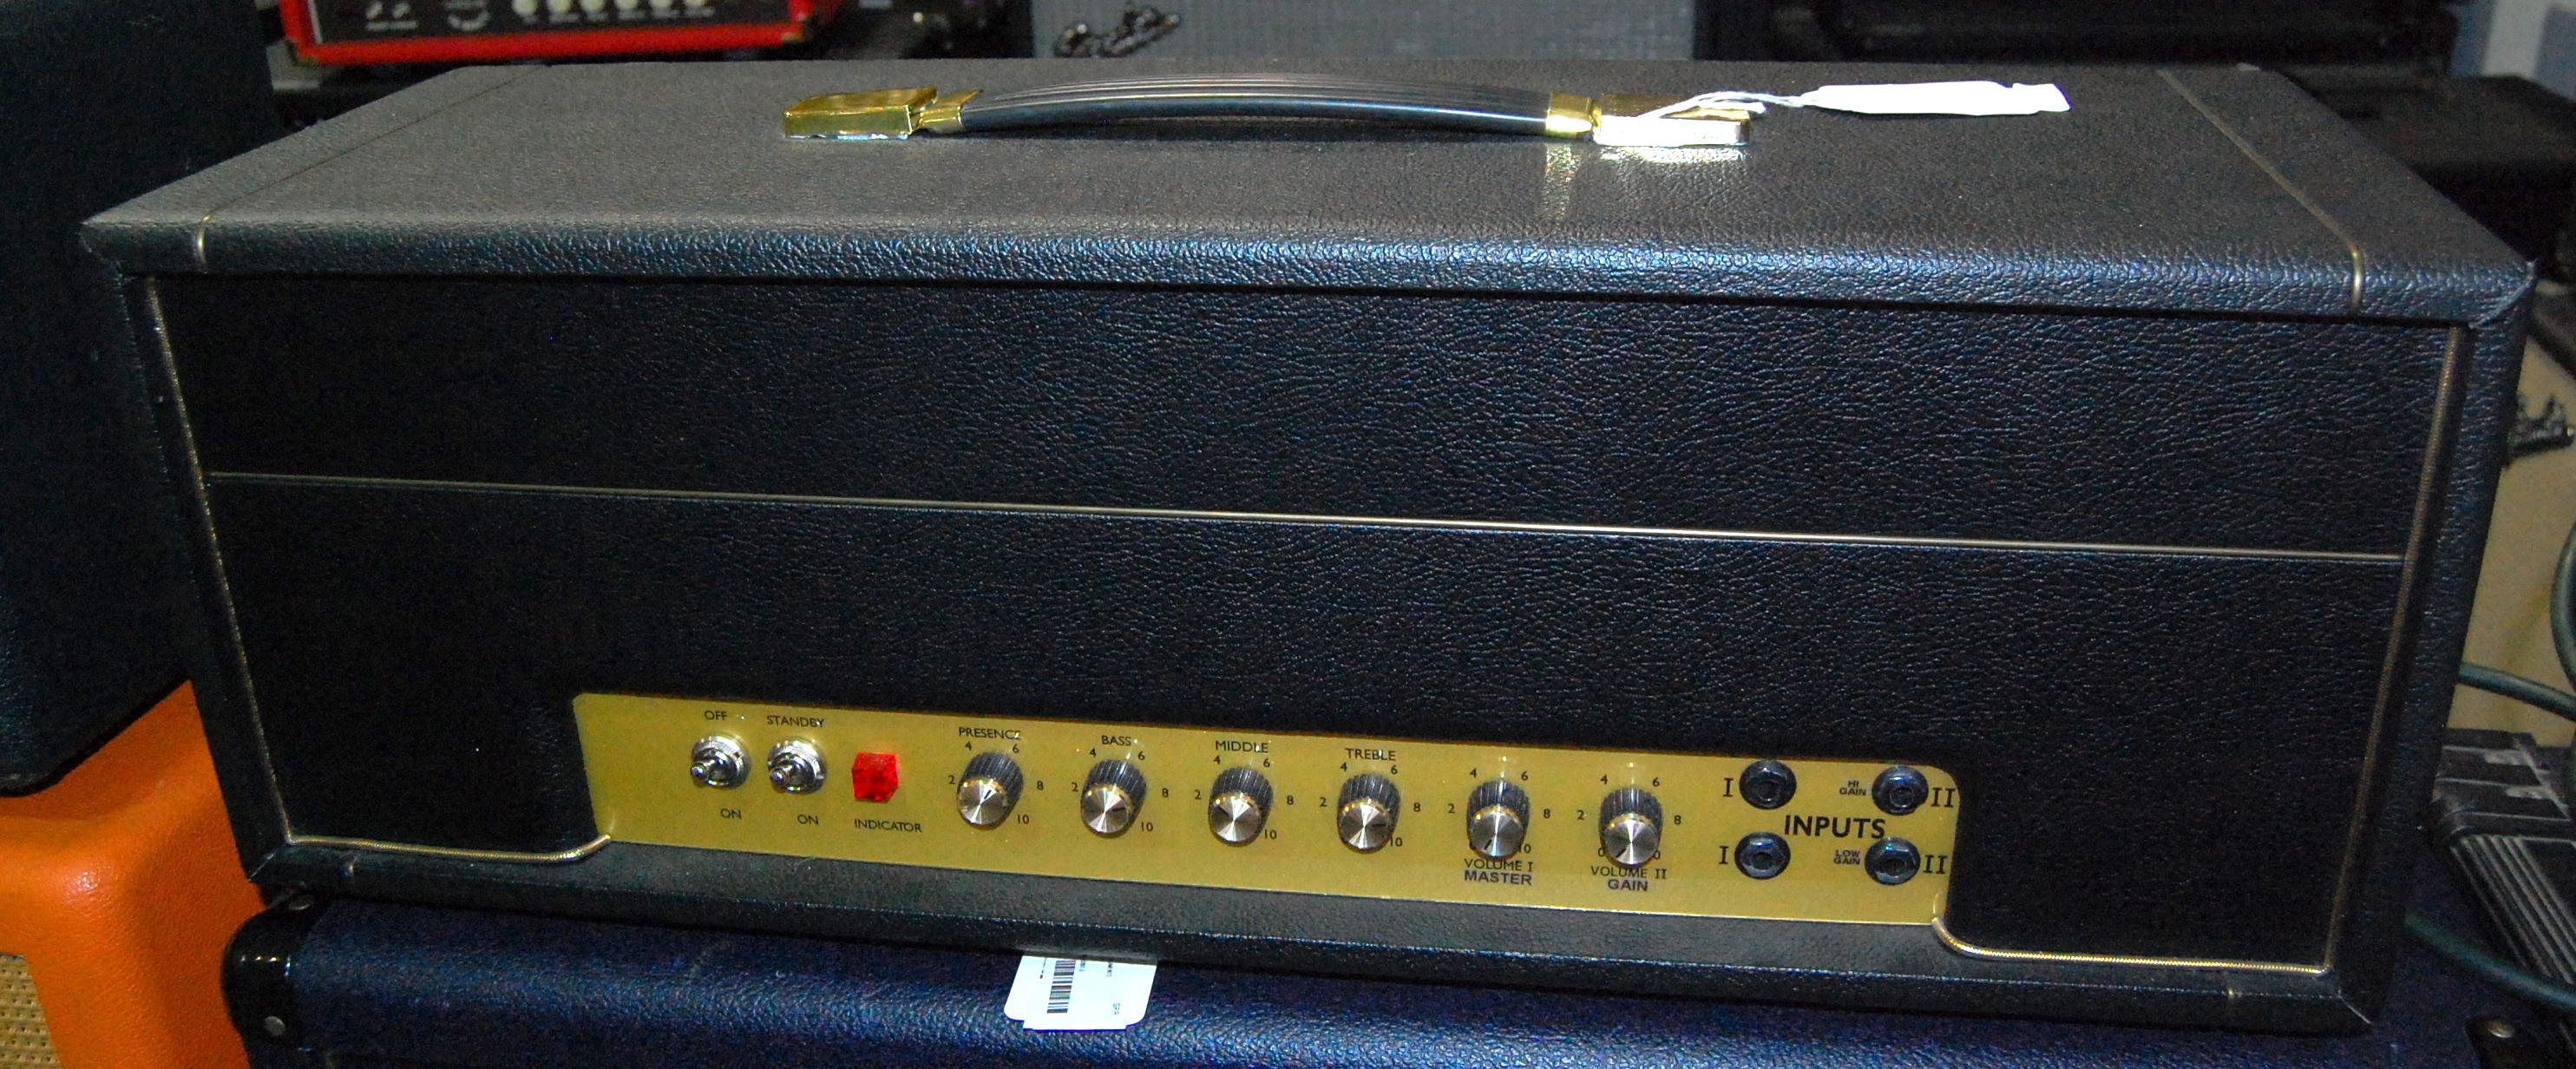 ROCKITT RETRO RR50 Handbuilt Plexi Replica 50W Tube Guitar Amplifier Amp Head DAVID HOPKINS PANDORA MOD